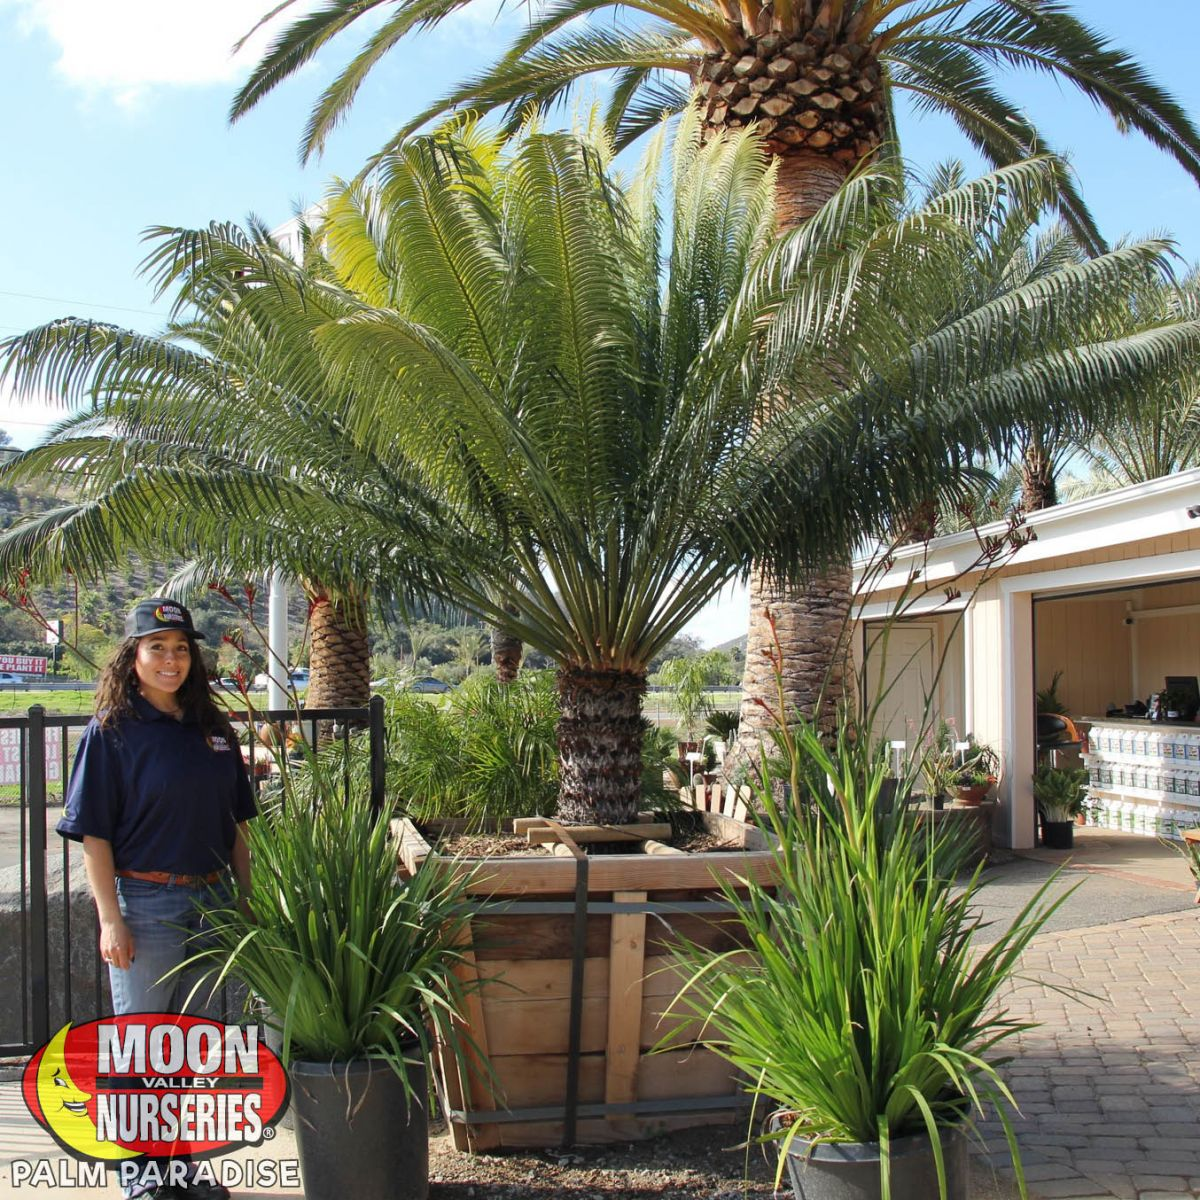 Queen Sago Palm Palm Tree Palm Paradise Nursery